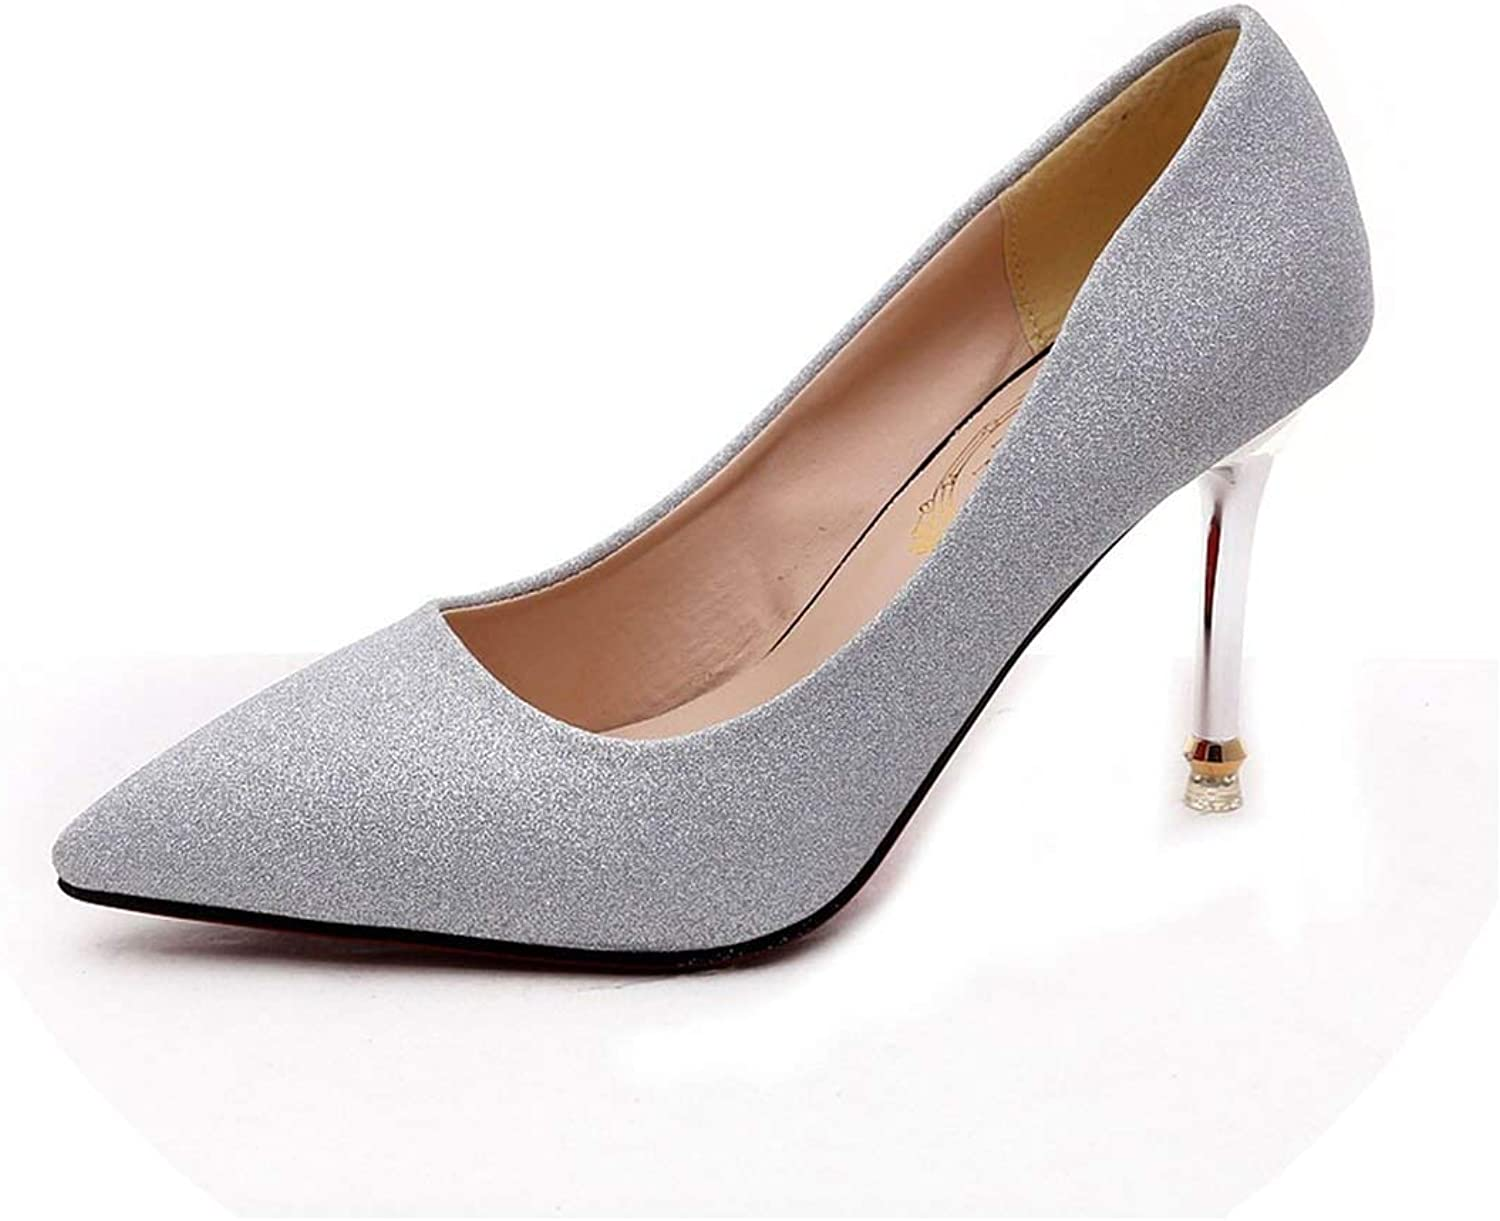 Women shoes Fashion Pointed Toe Pumps Patent Leather High Heels,Silver,4.5